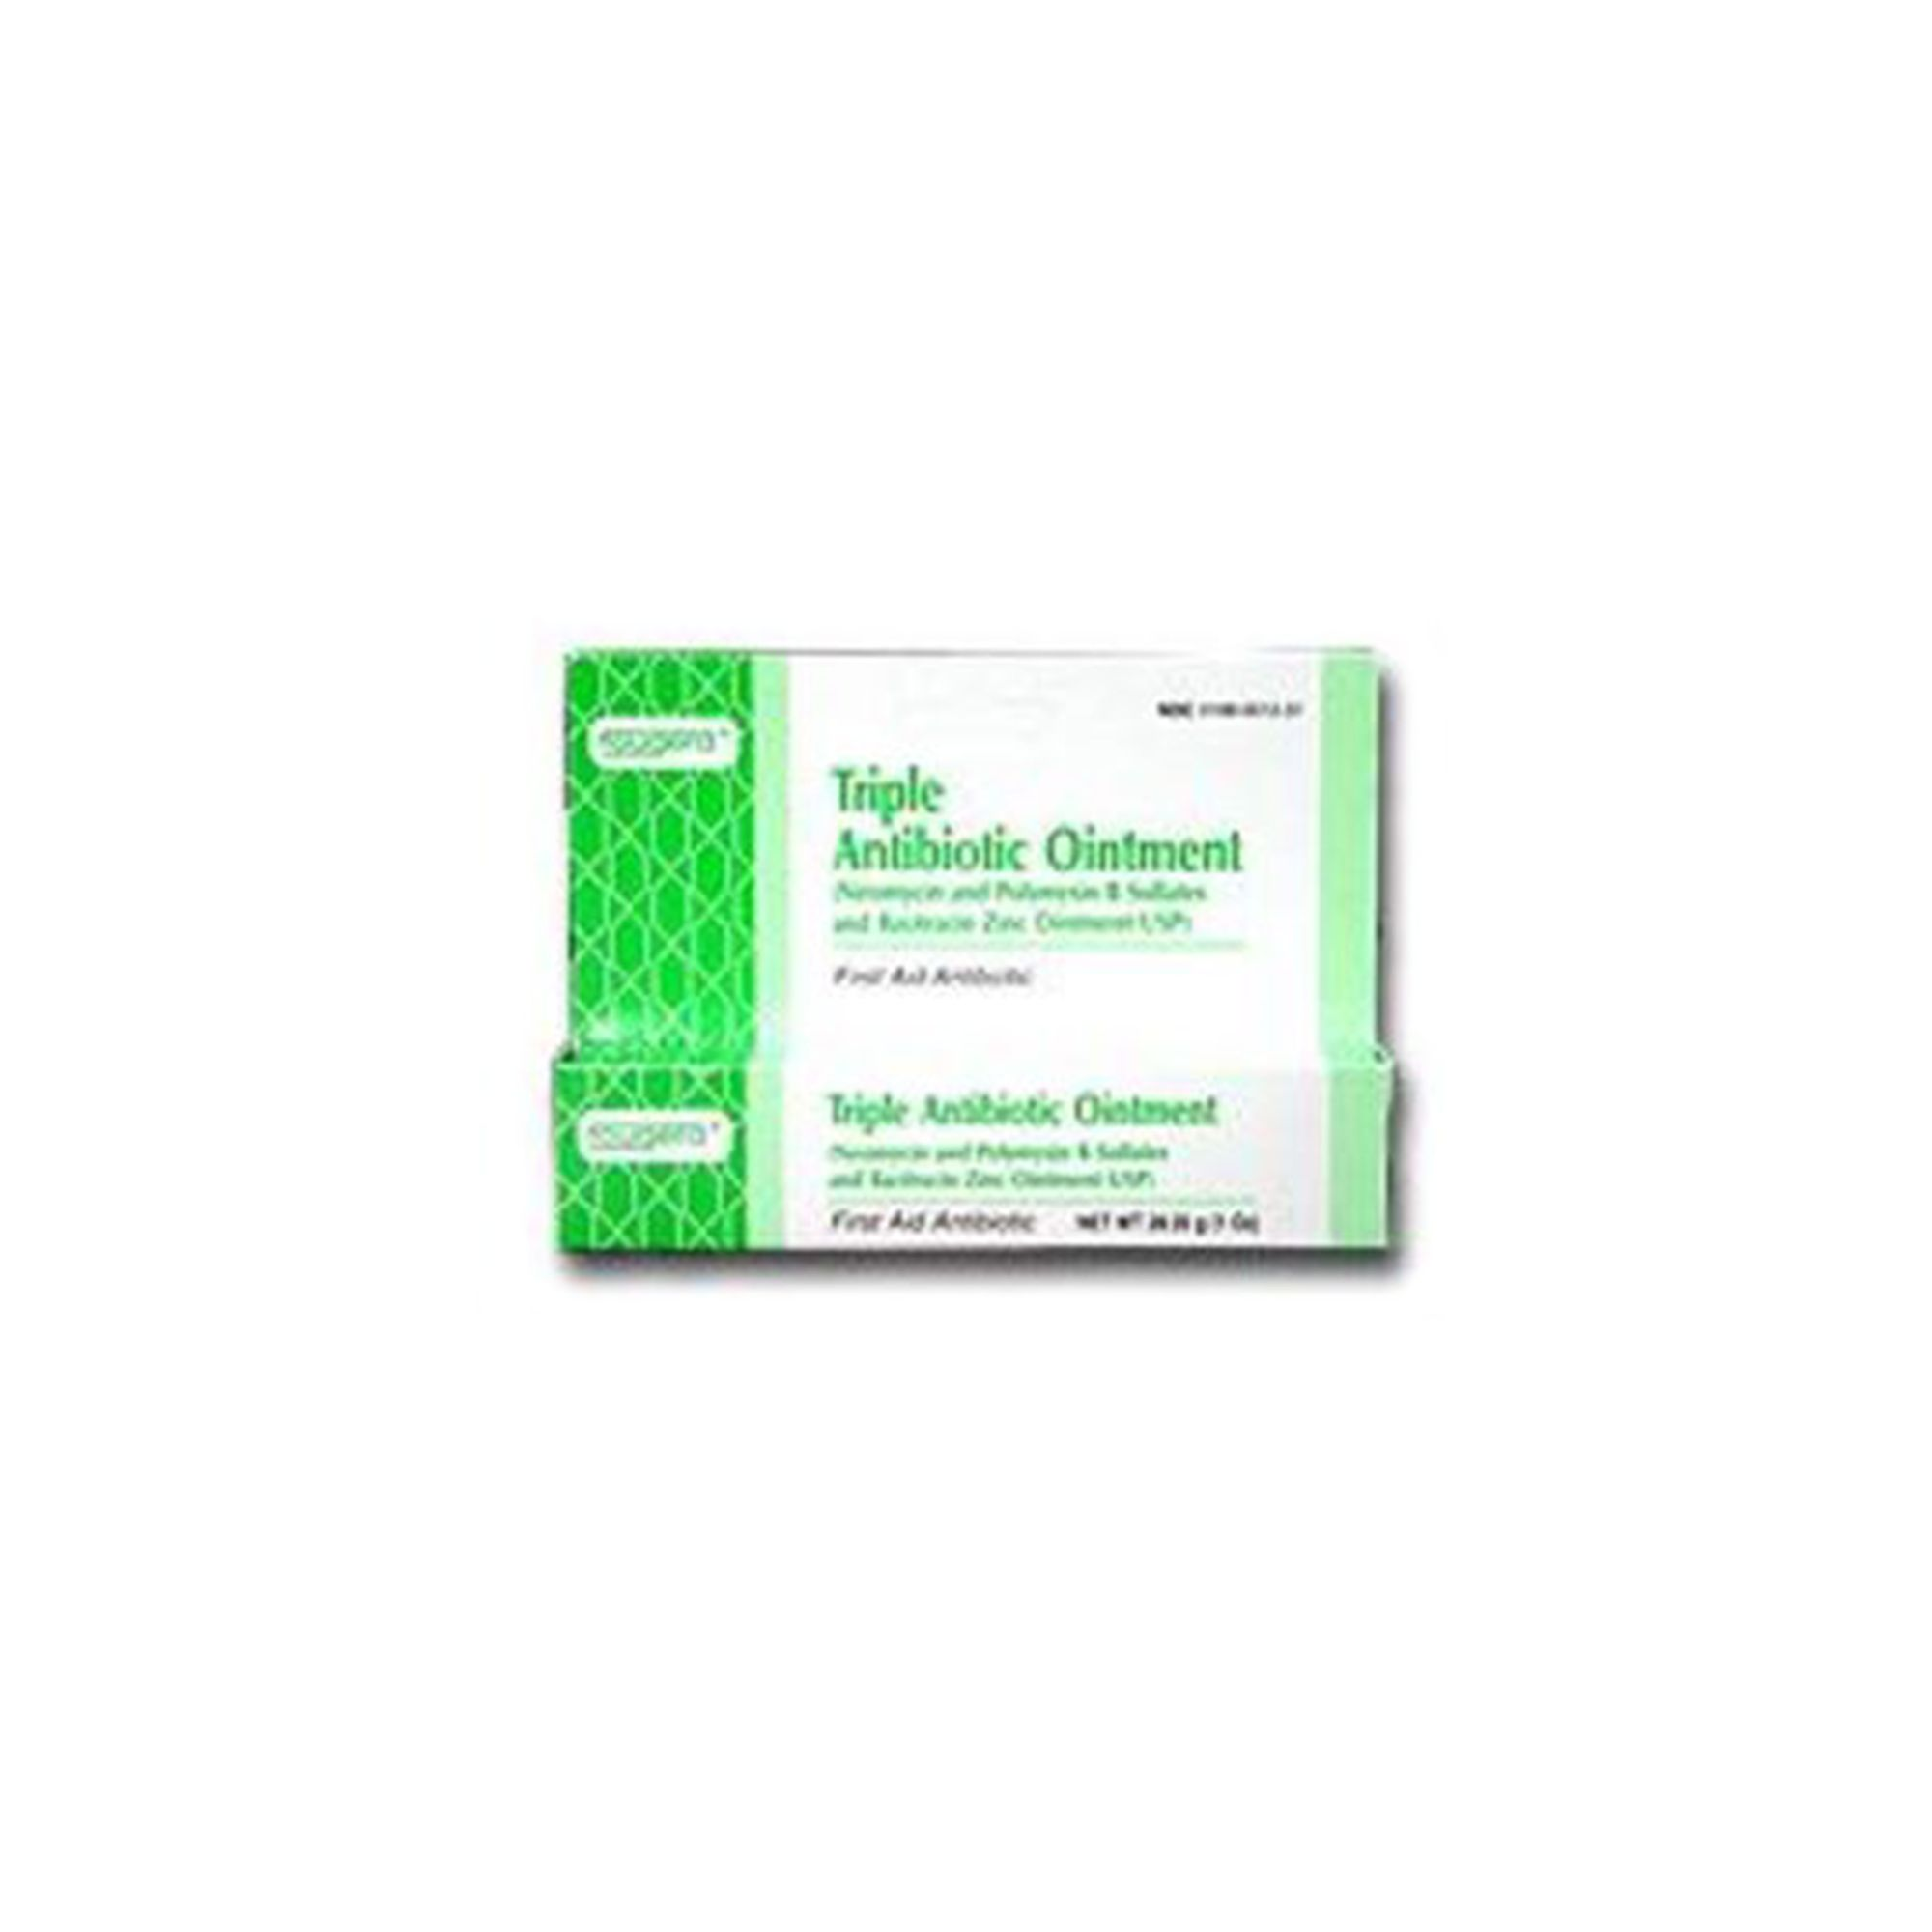 Triple Antibiotic Ointment Size 1 Fl Oz